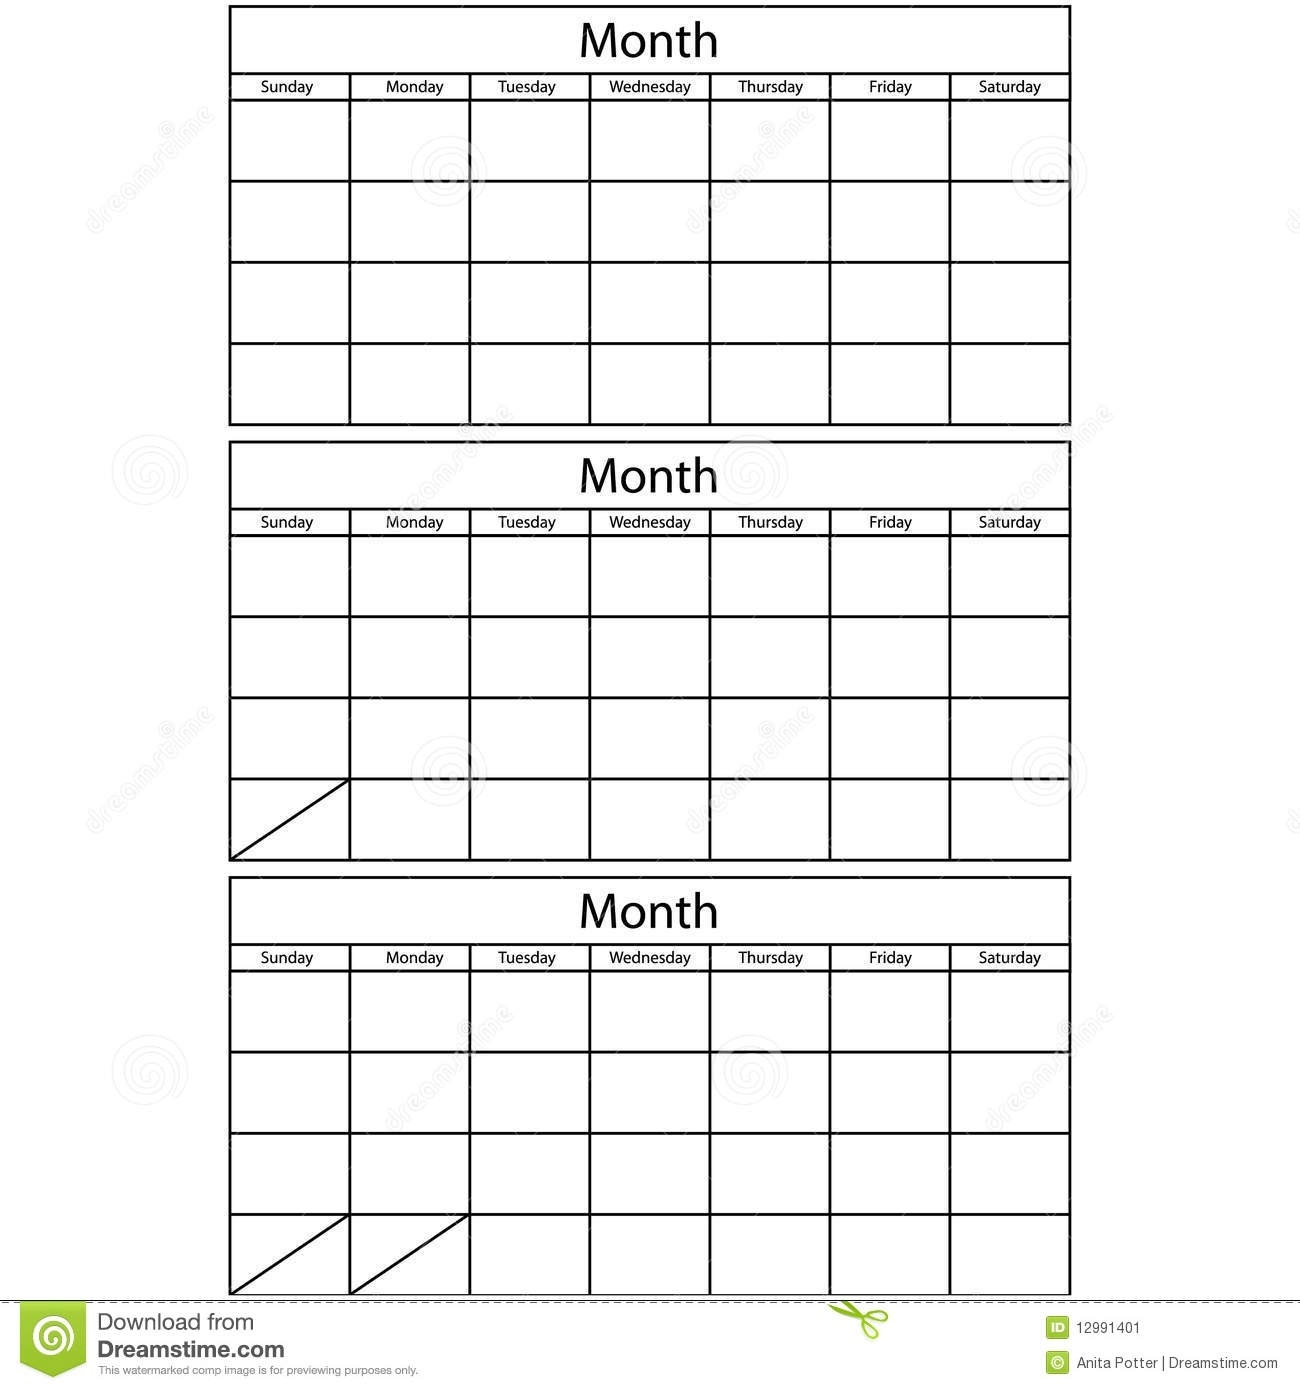 Blank Calendar 3 Templates Stock Vector. Illustration Of Month  Three Month Single Page Calendar